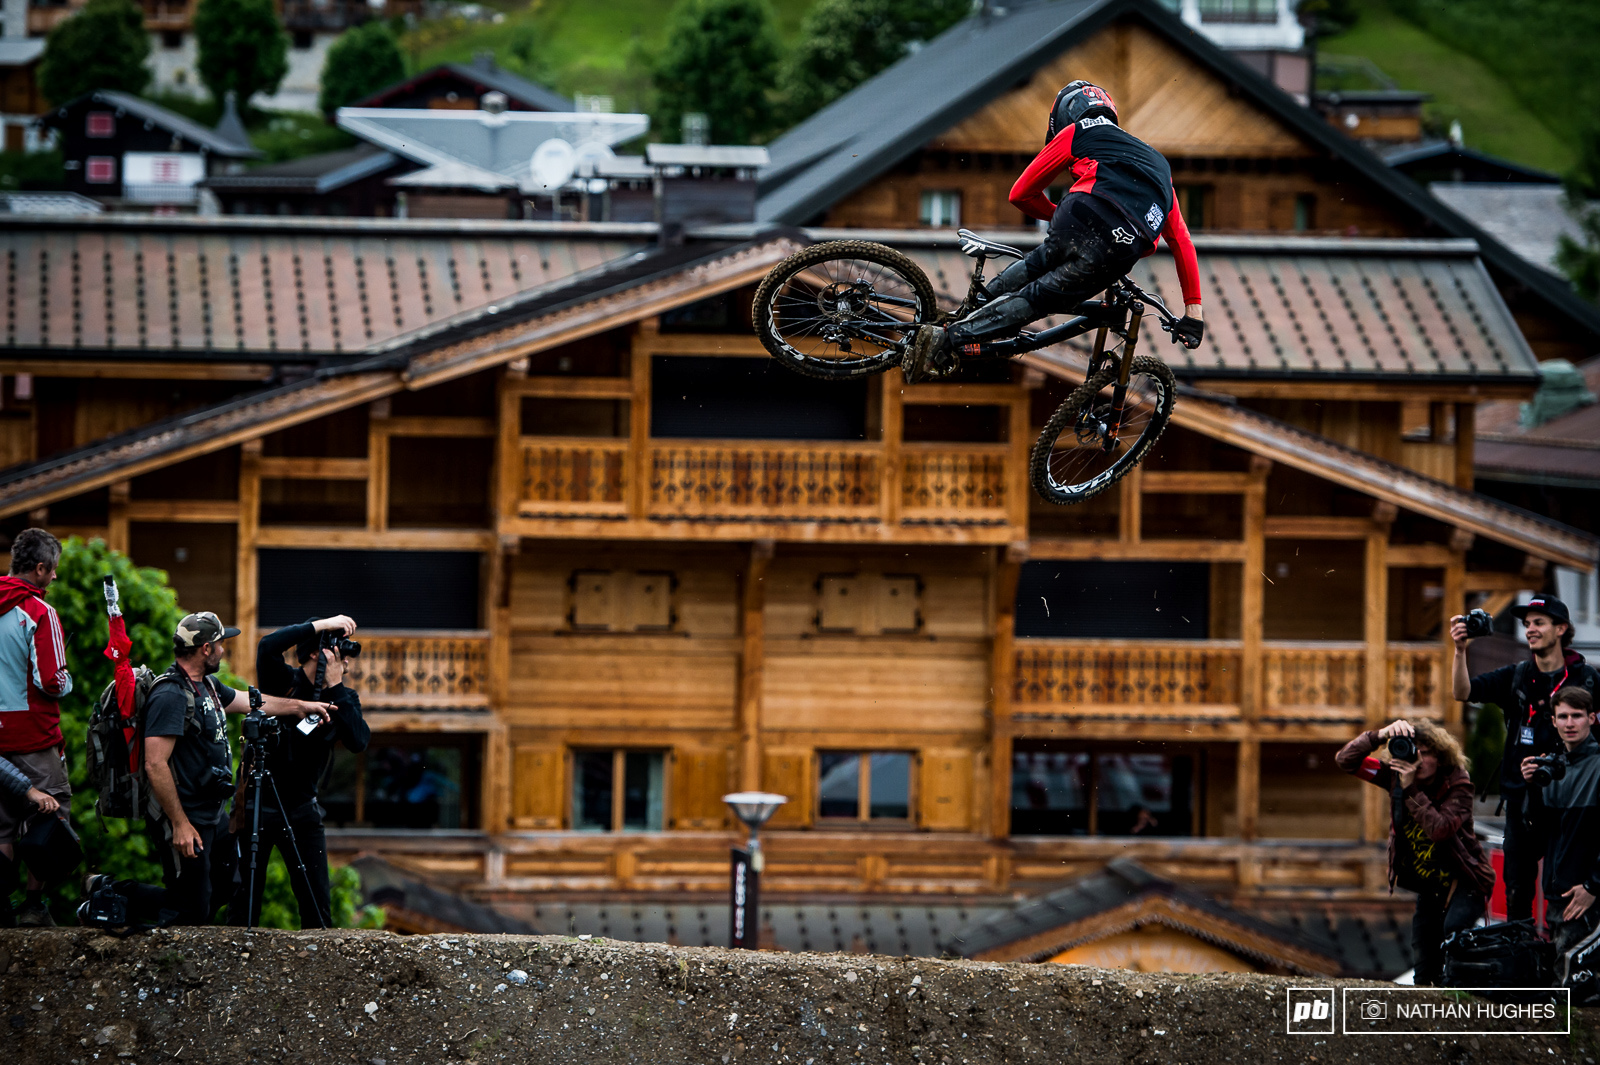 Bas Van Steenbergen making all the right shapes infront of Les Gets real estate.